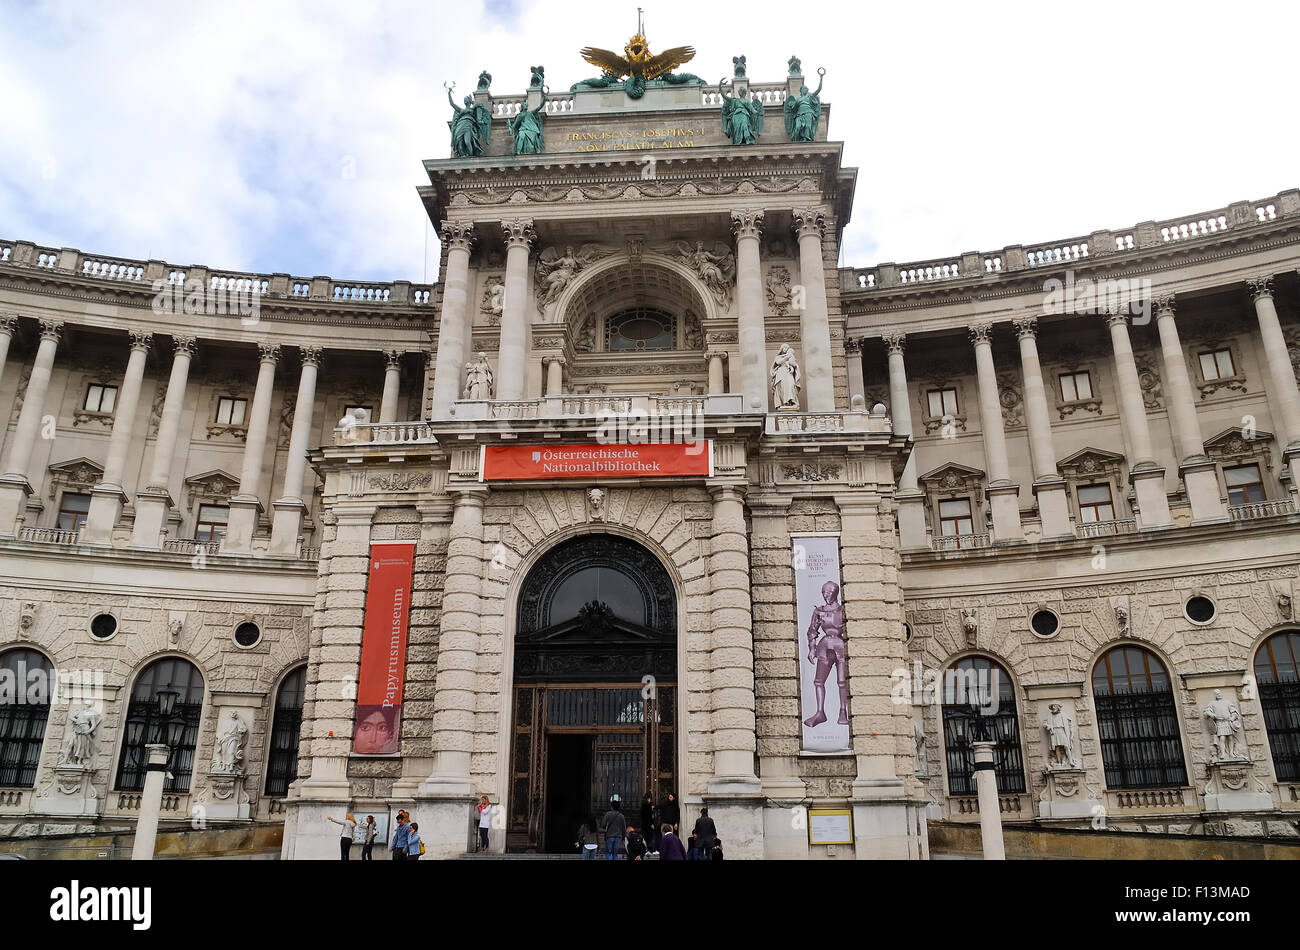 The Hofburg Imperial Palace, Heldenplatz Heroes Square, Vienna.The Hofburg Palace in Vienna has been the home to - Stock Image